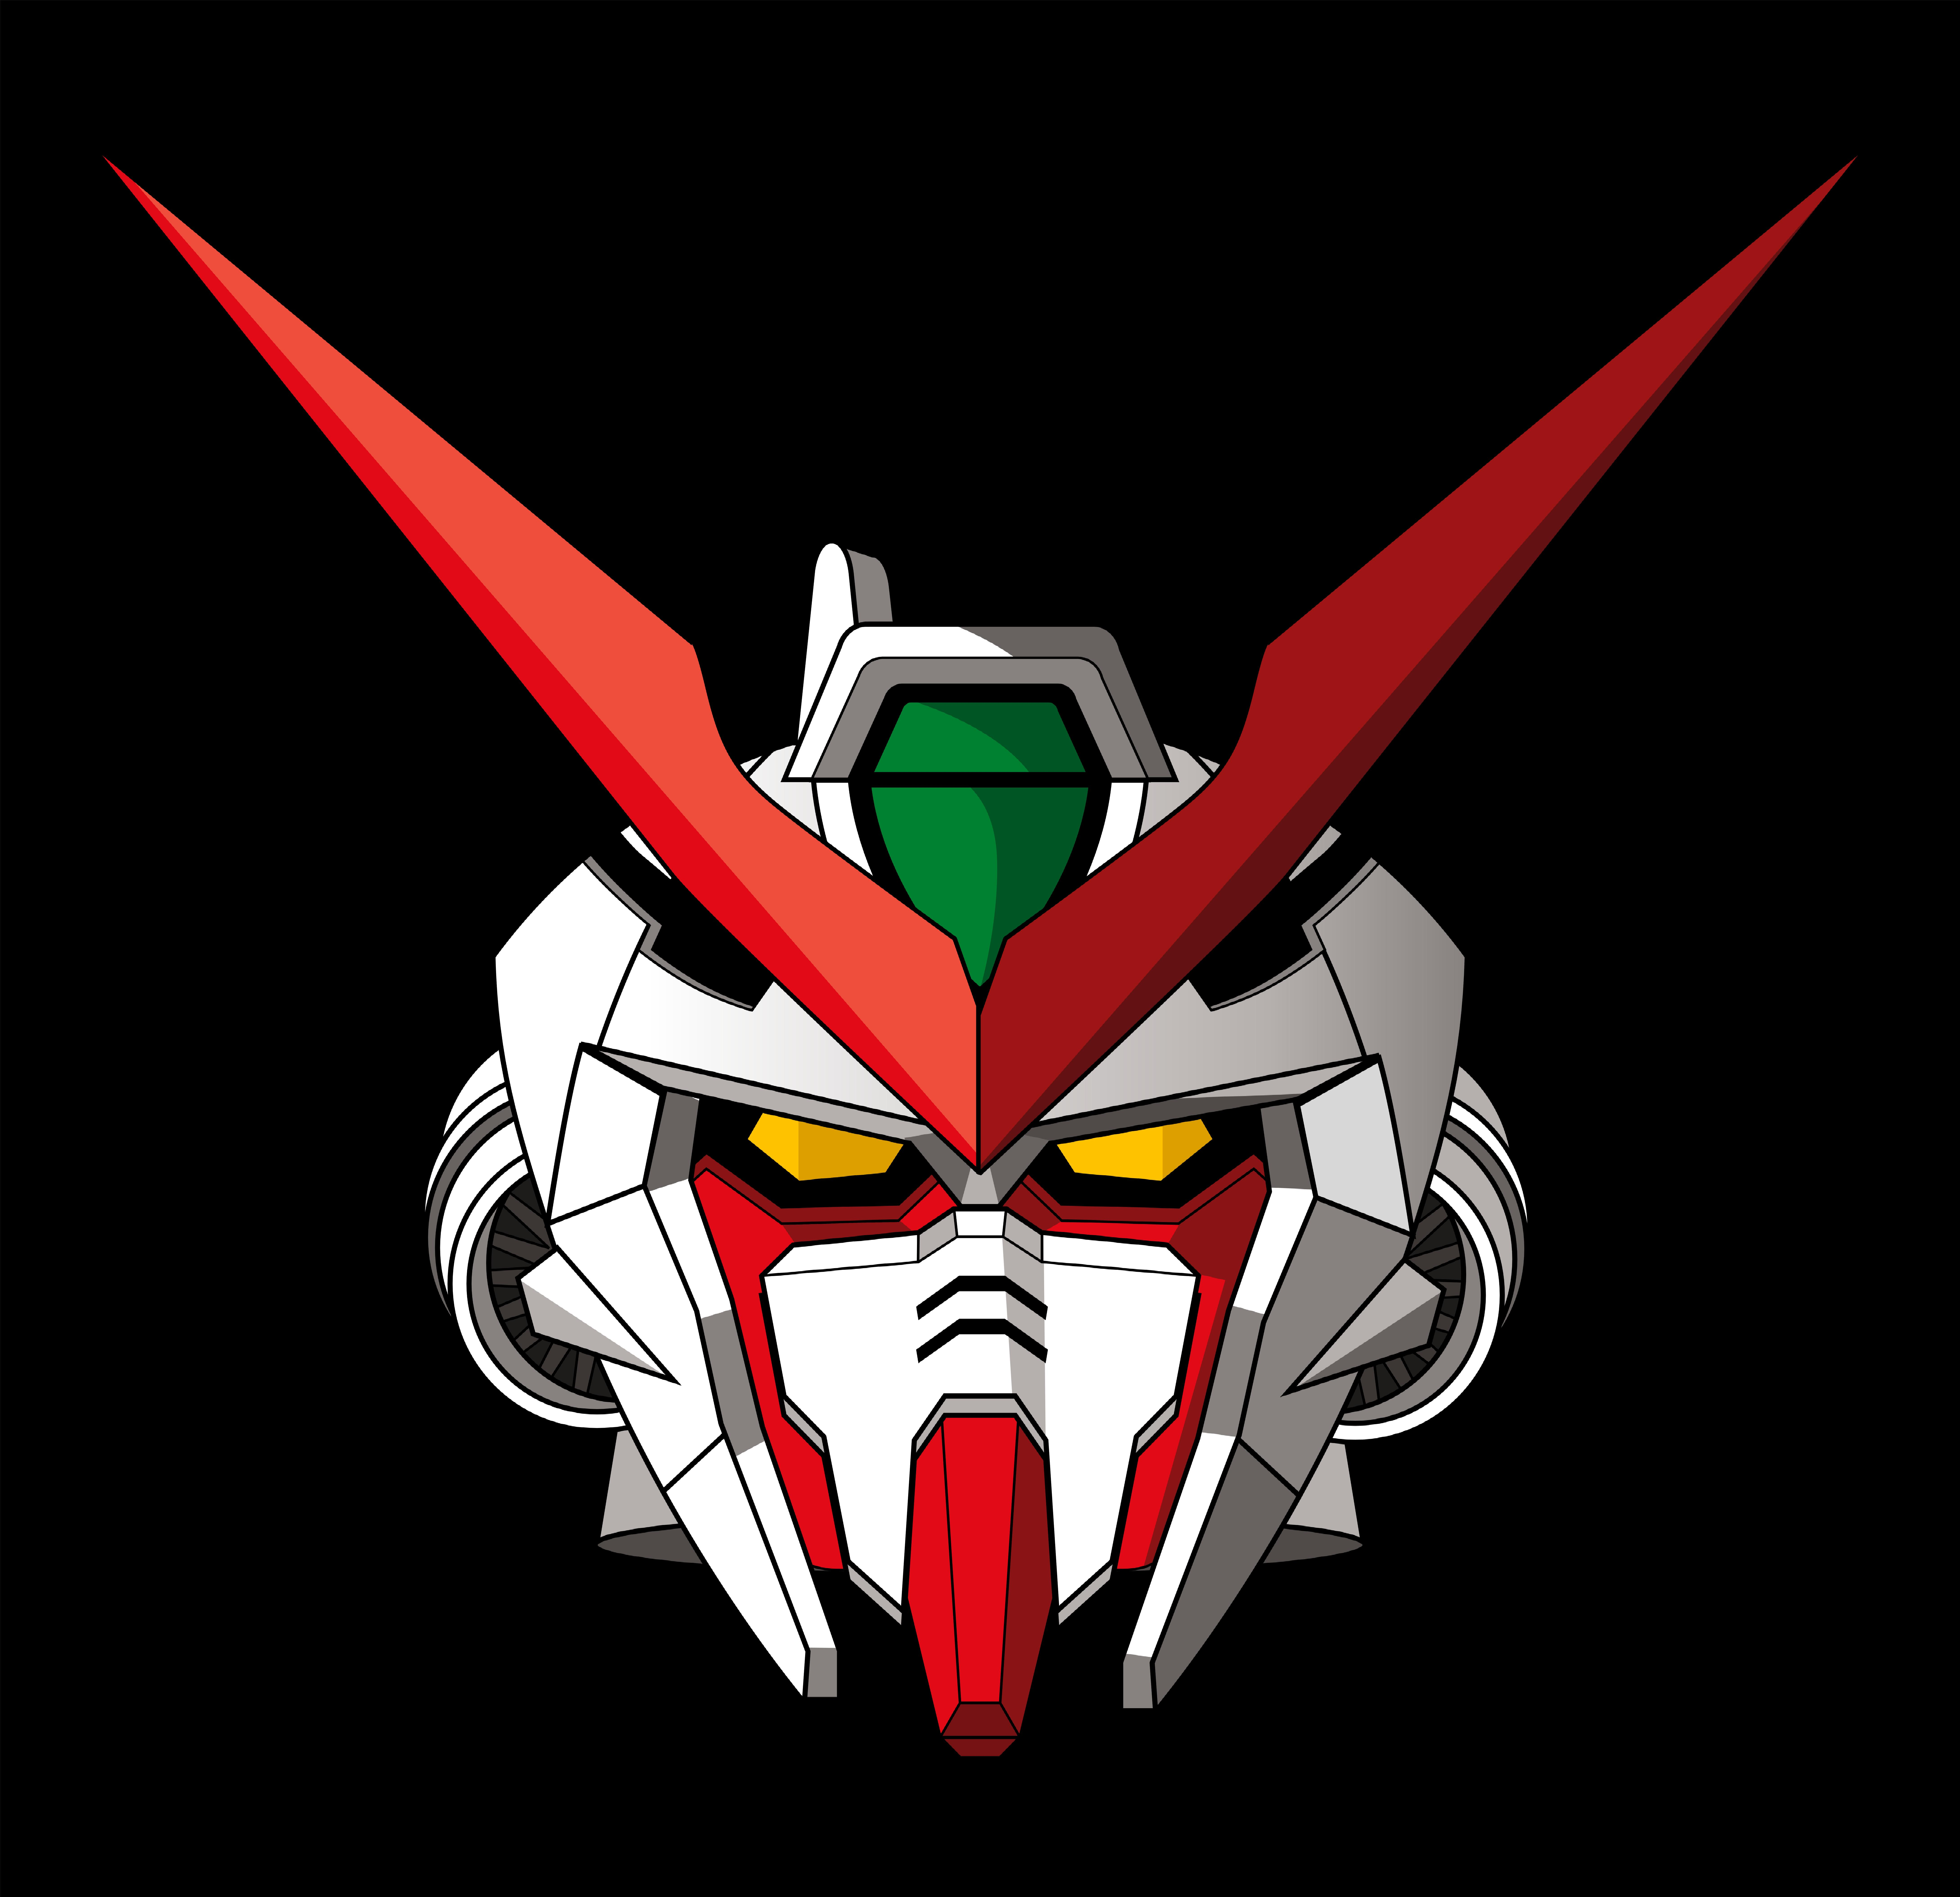 Mbf p02 gundam astray red frame by cr3ative on deviantart mbf p02 gundam astray red frame by cr3ative voltagebd Images